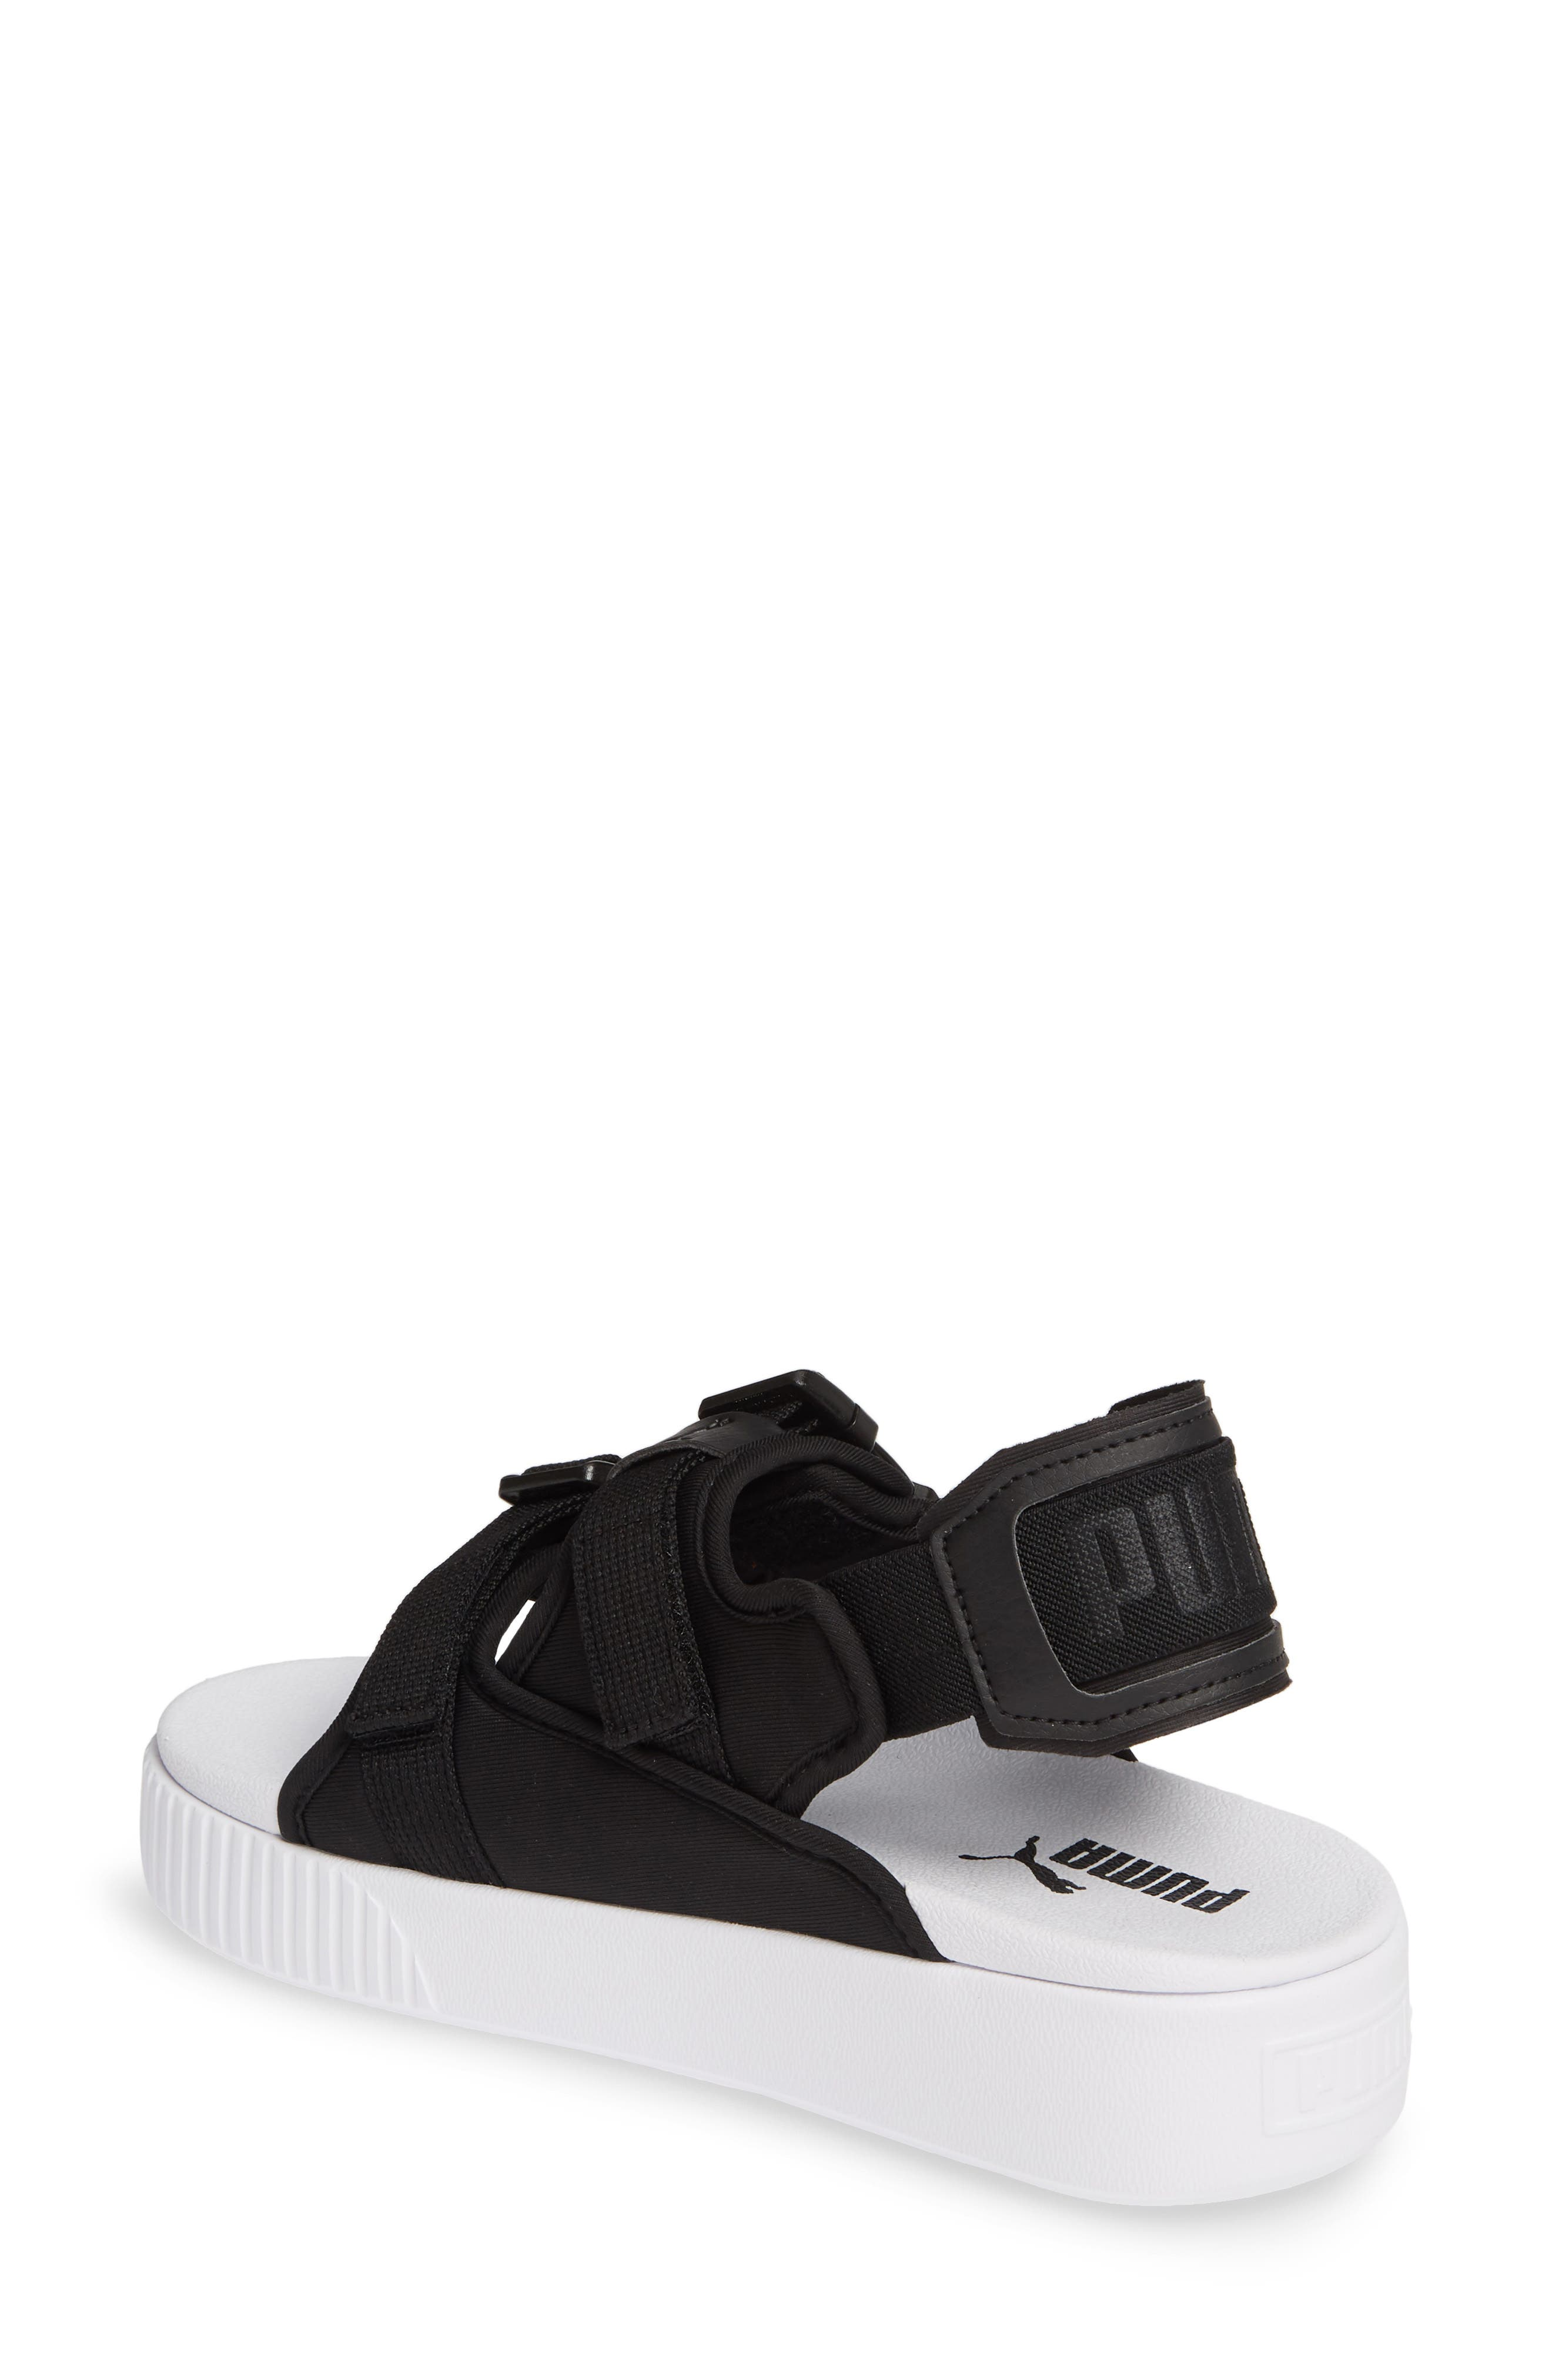 PUMA, Platform Slide YLM 19 Sandal, Alternate thumbnail 2, color, BLACK/ WHITE